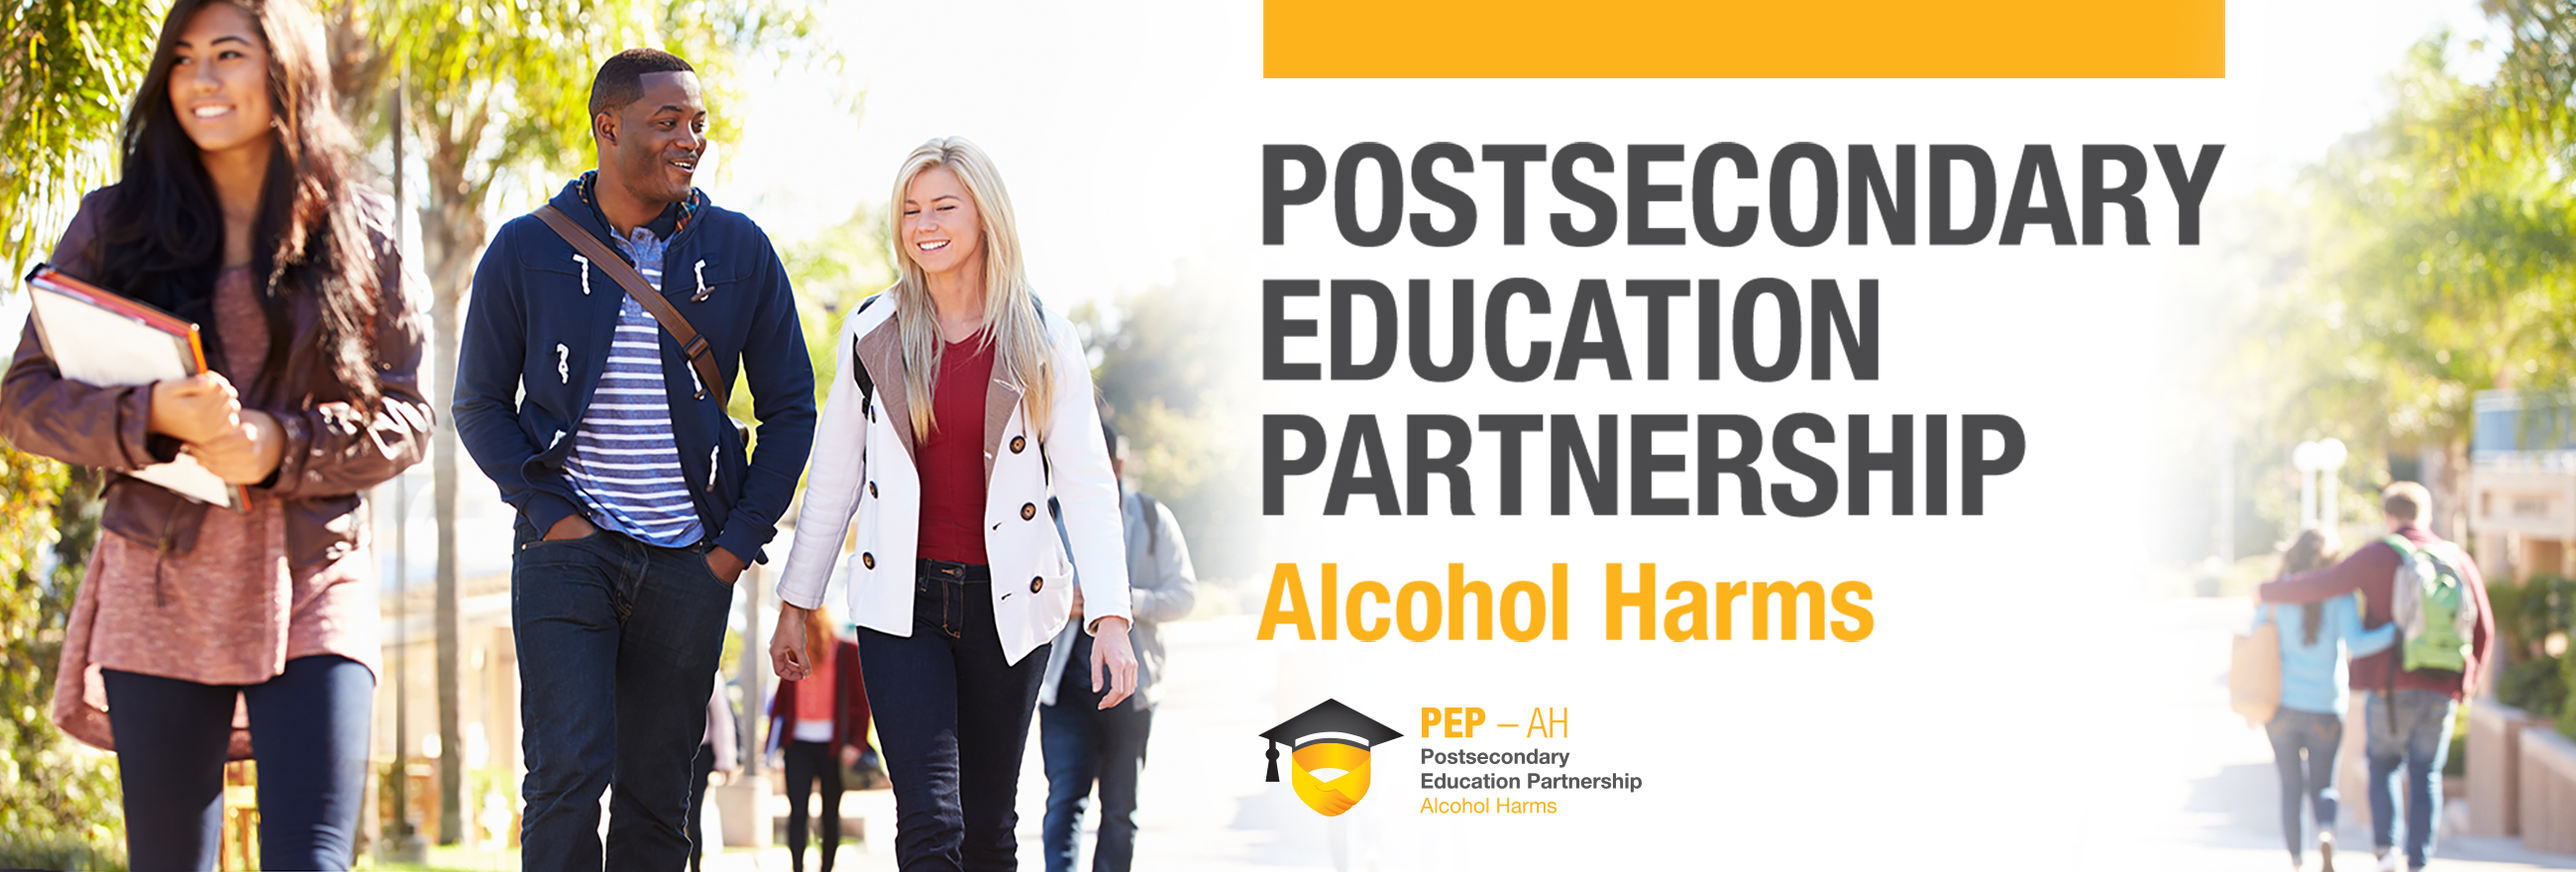 Postsecondary Education Partnership — Alcohol Harms